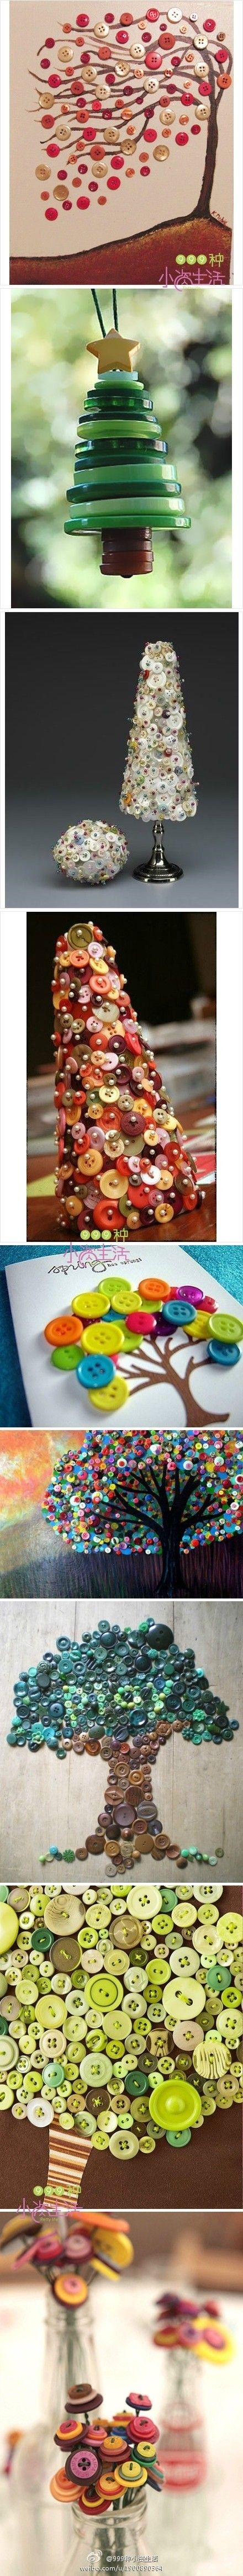 So many Button crafts!